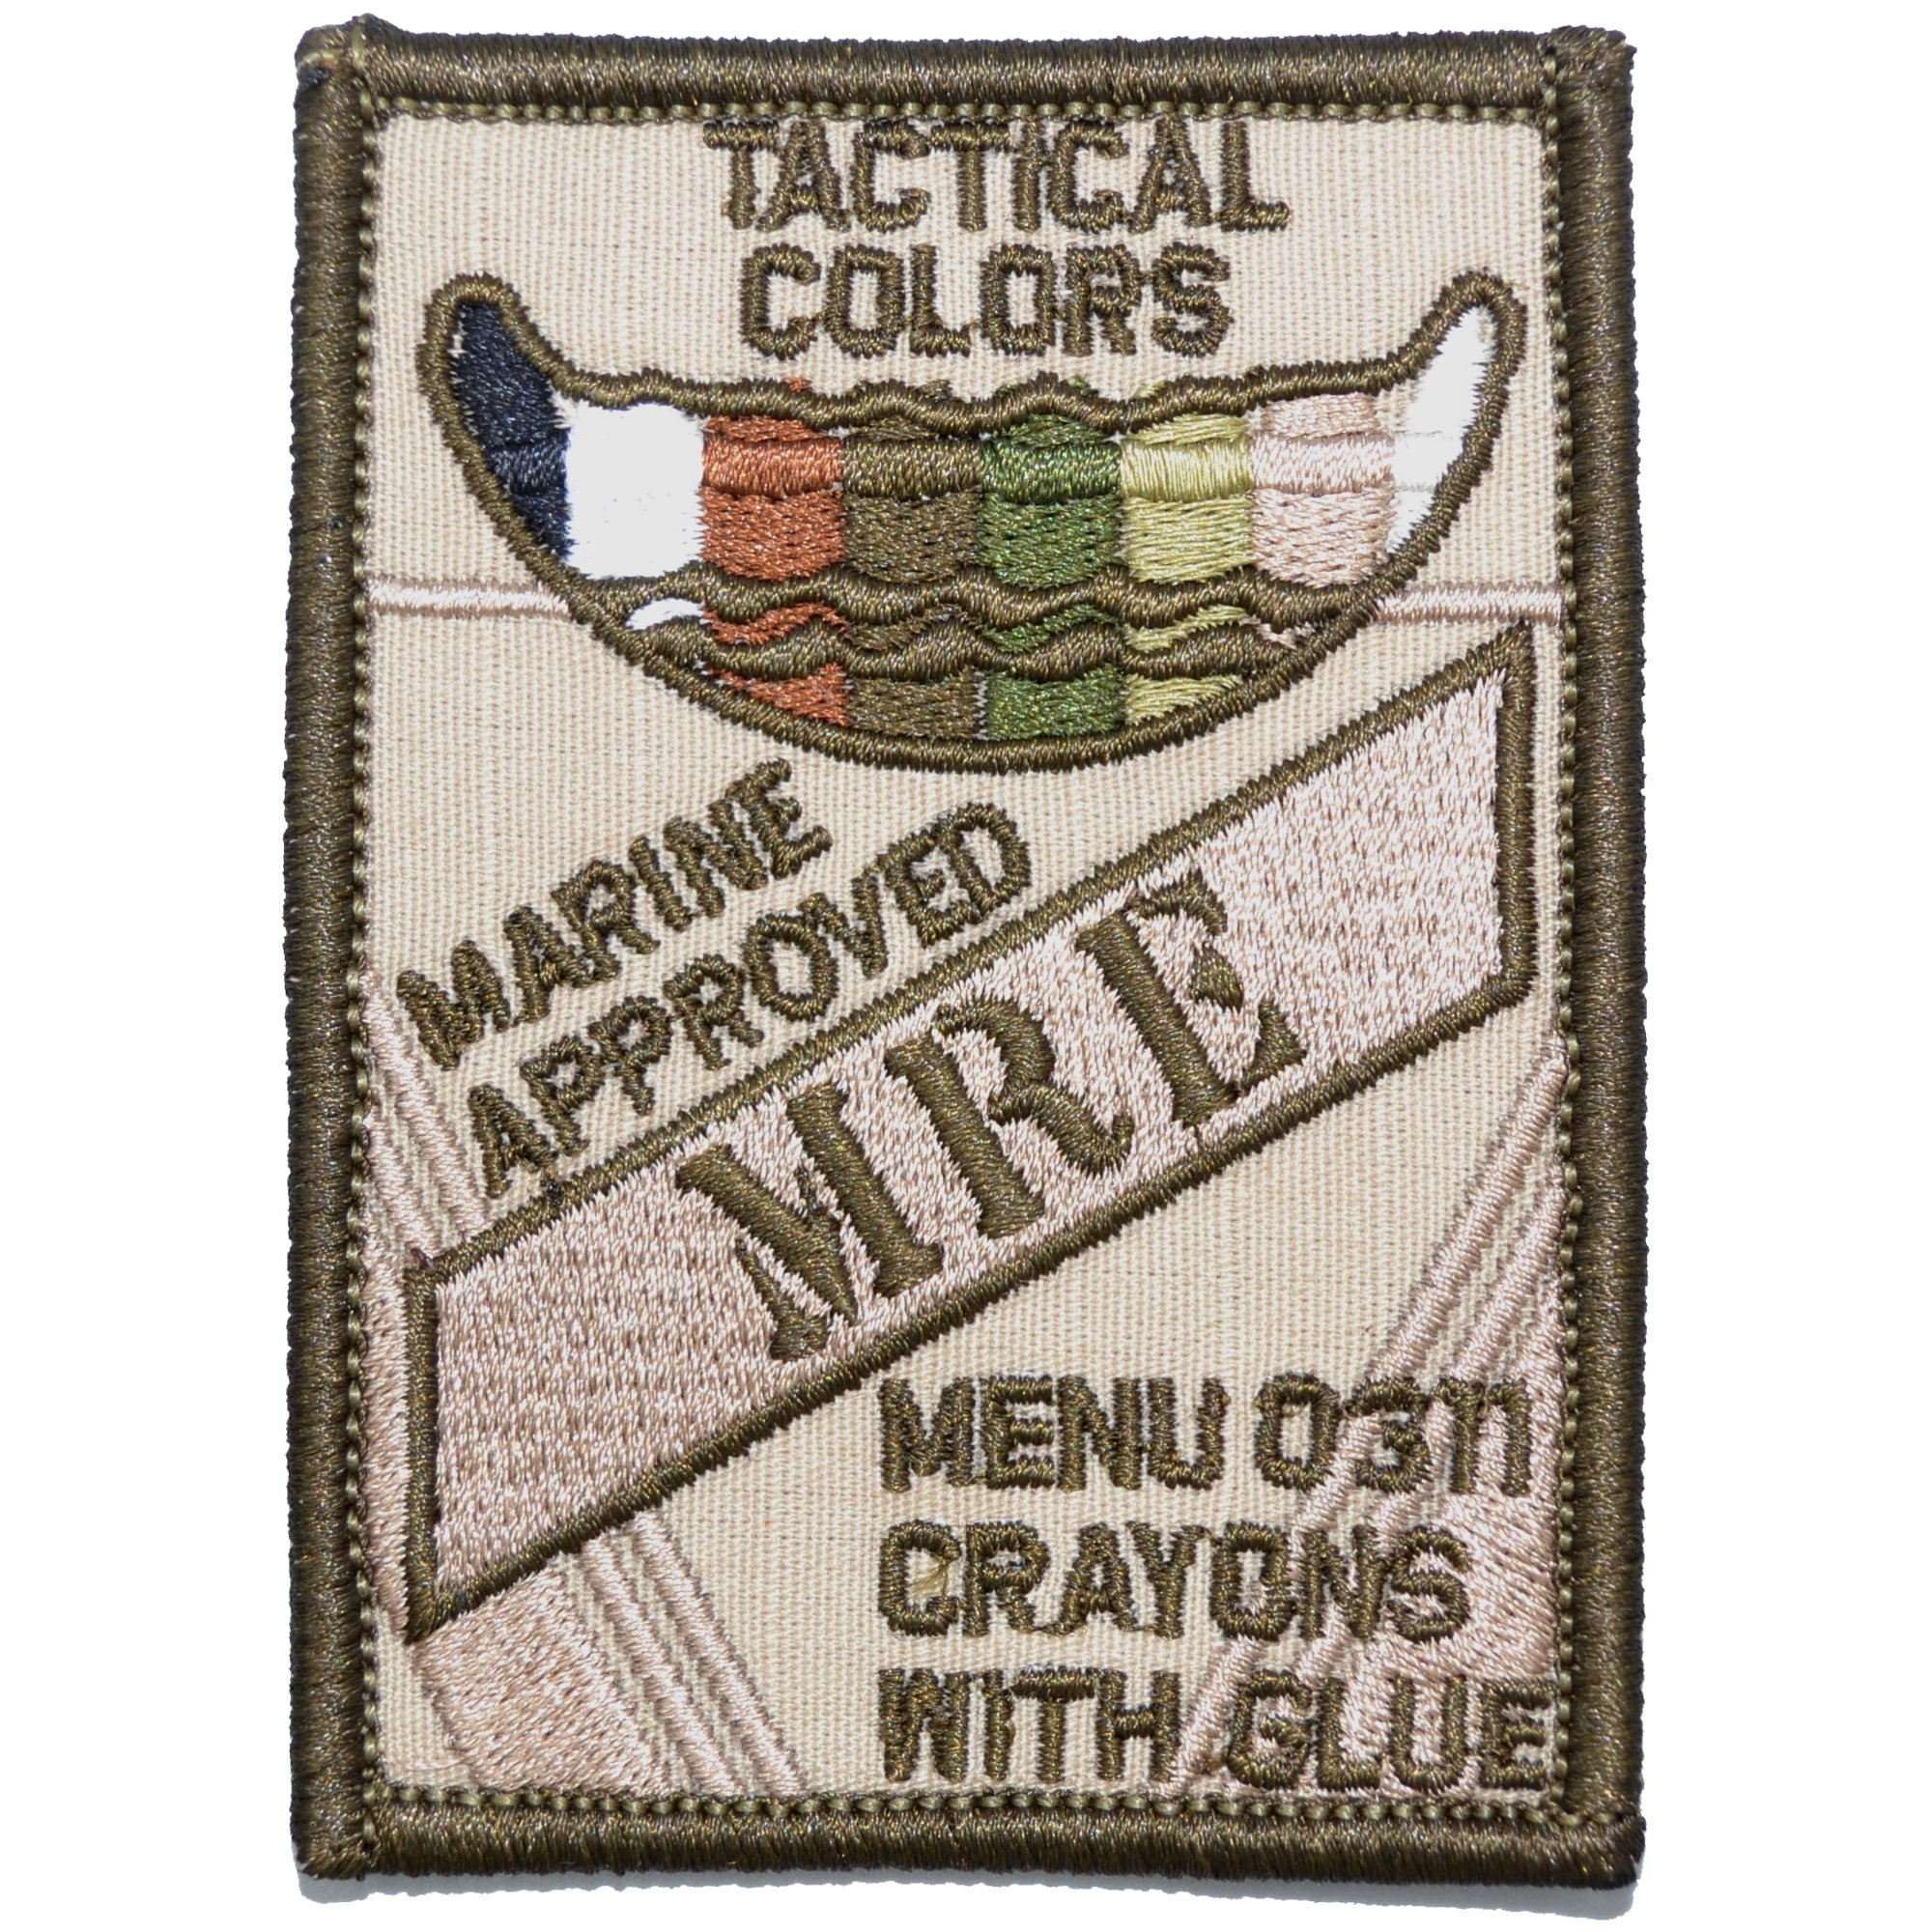 Tactical Color Crayons Marine Approved MRE 2.5x3.5 Patch by Tactical Gear Junkie